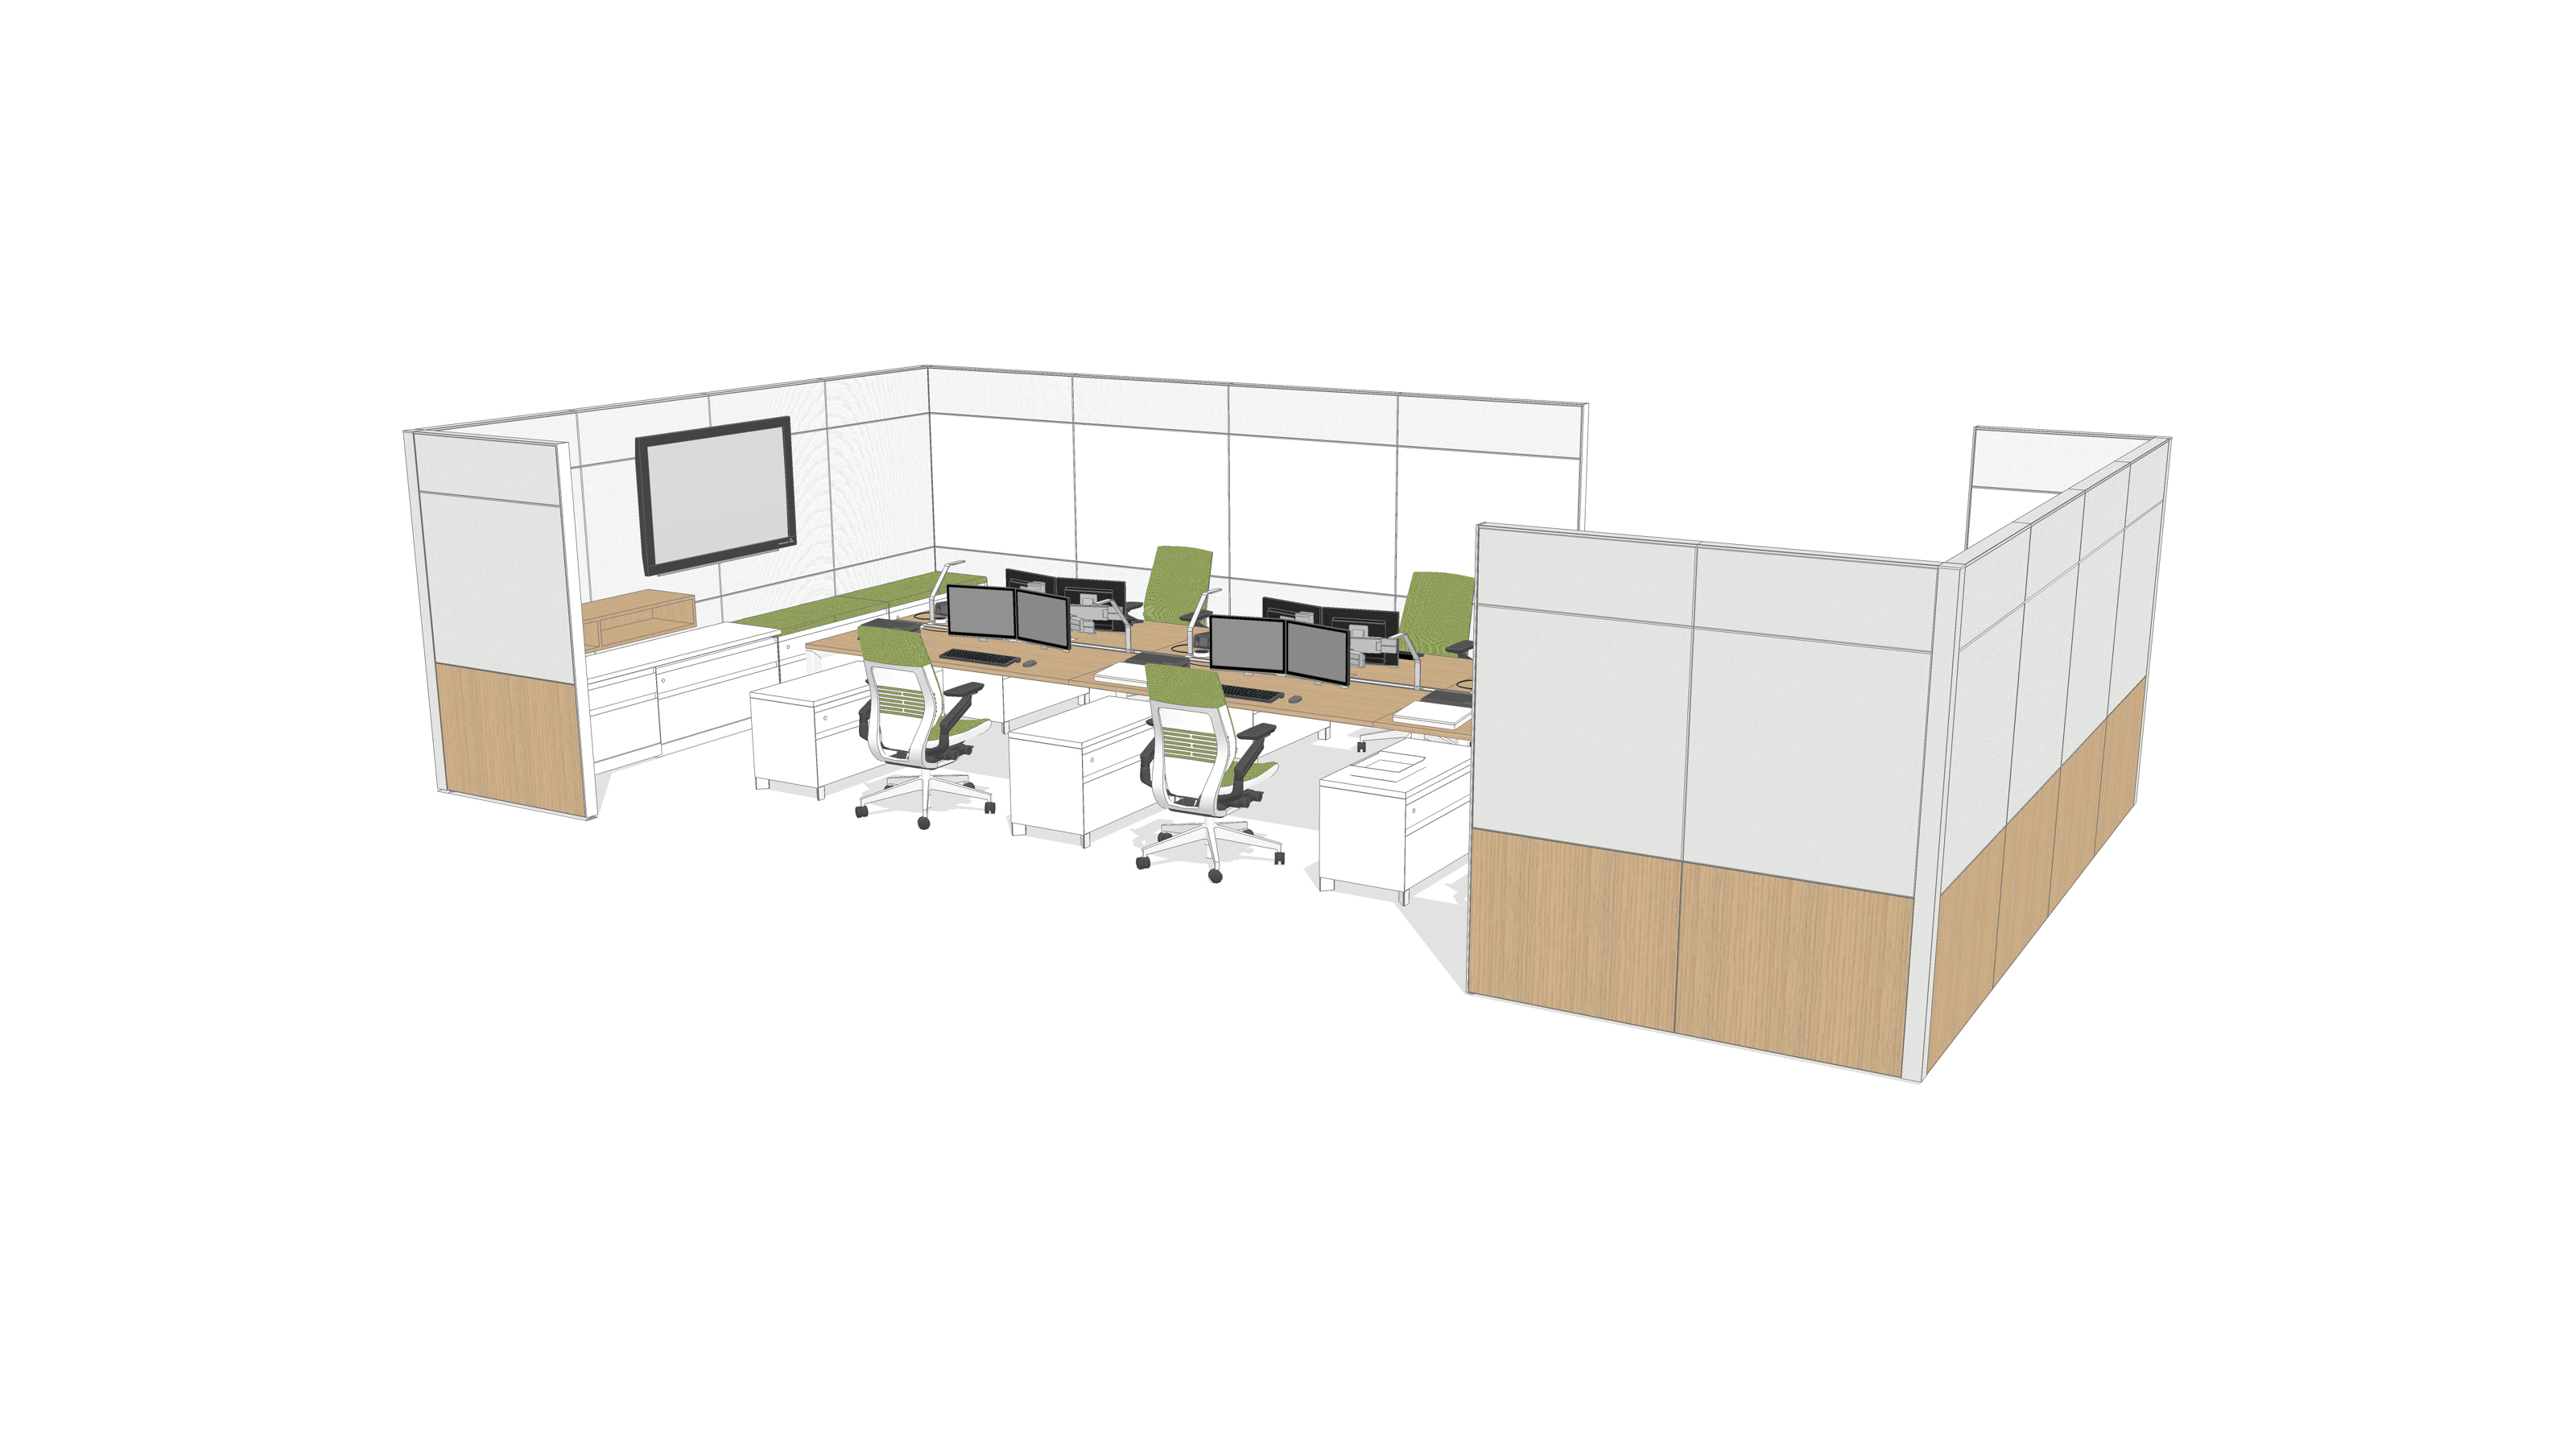 2d amp 3d space planning ecos office furniture - Nh3dk3at